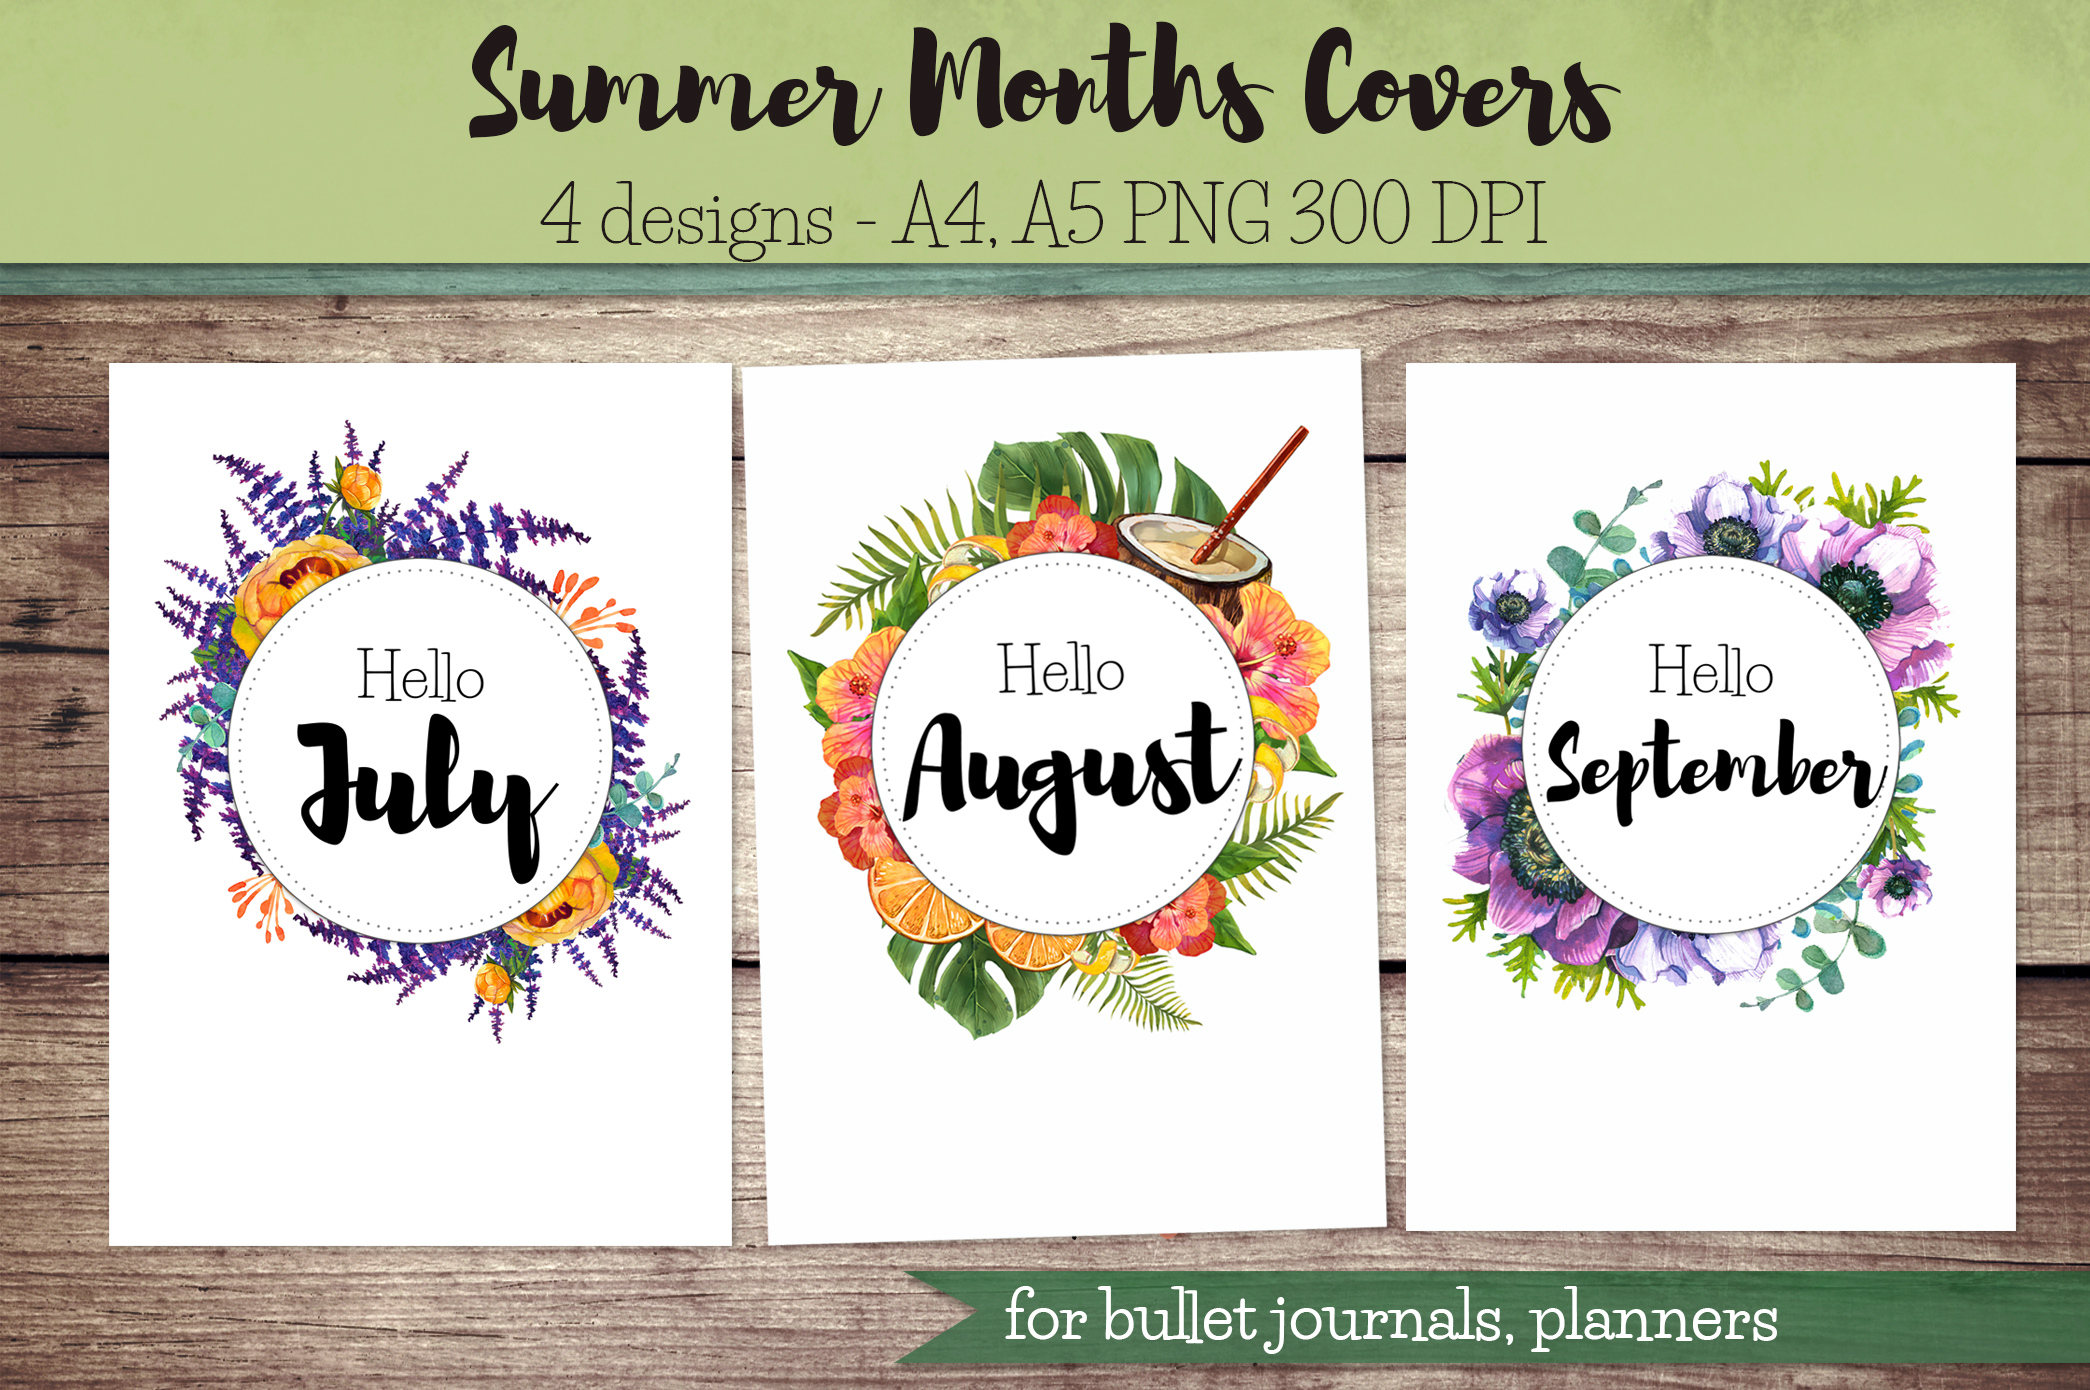 Summer Months Covers for Bullet Journal Planner / hello July